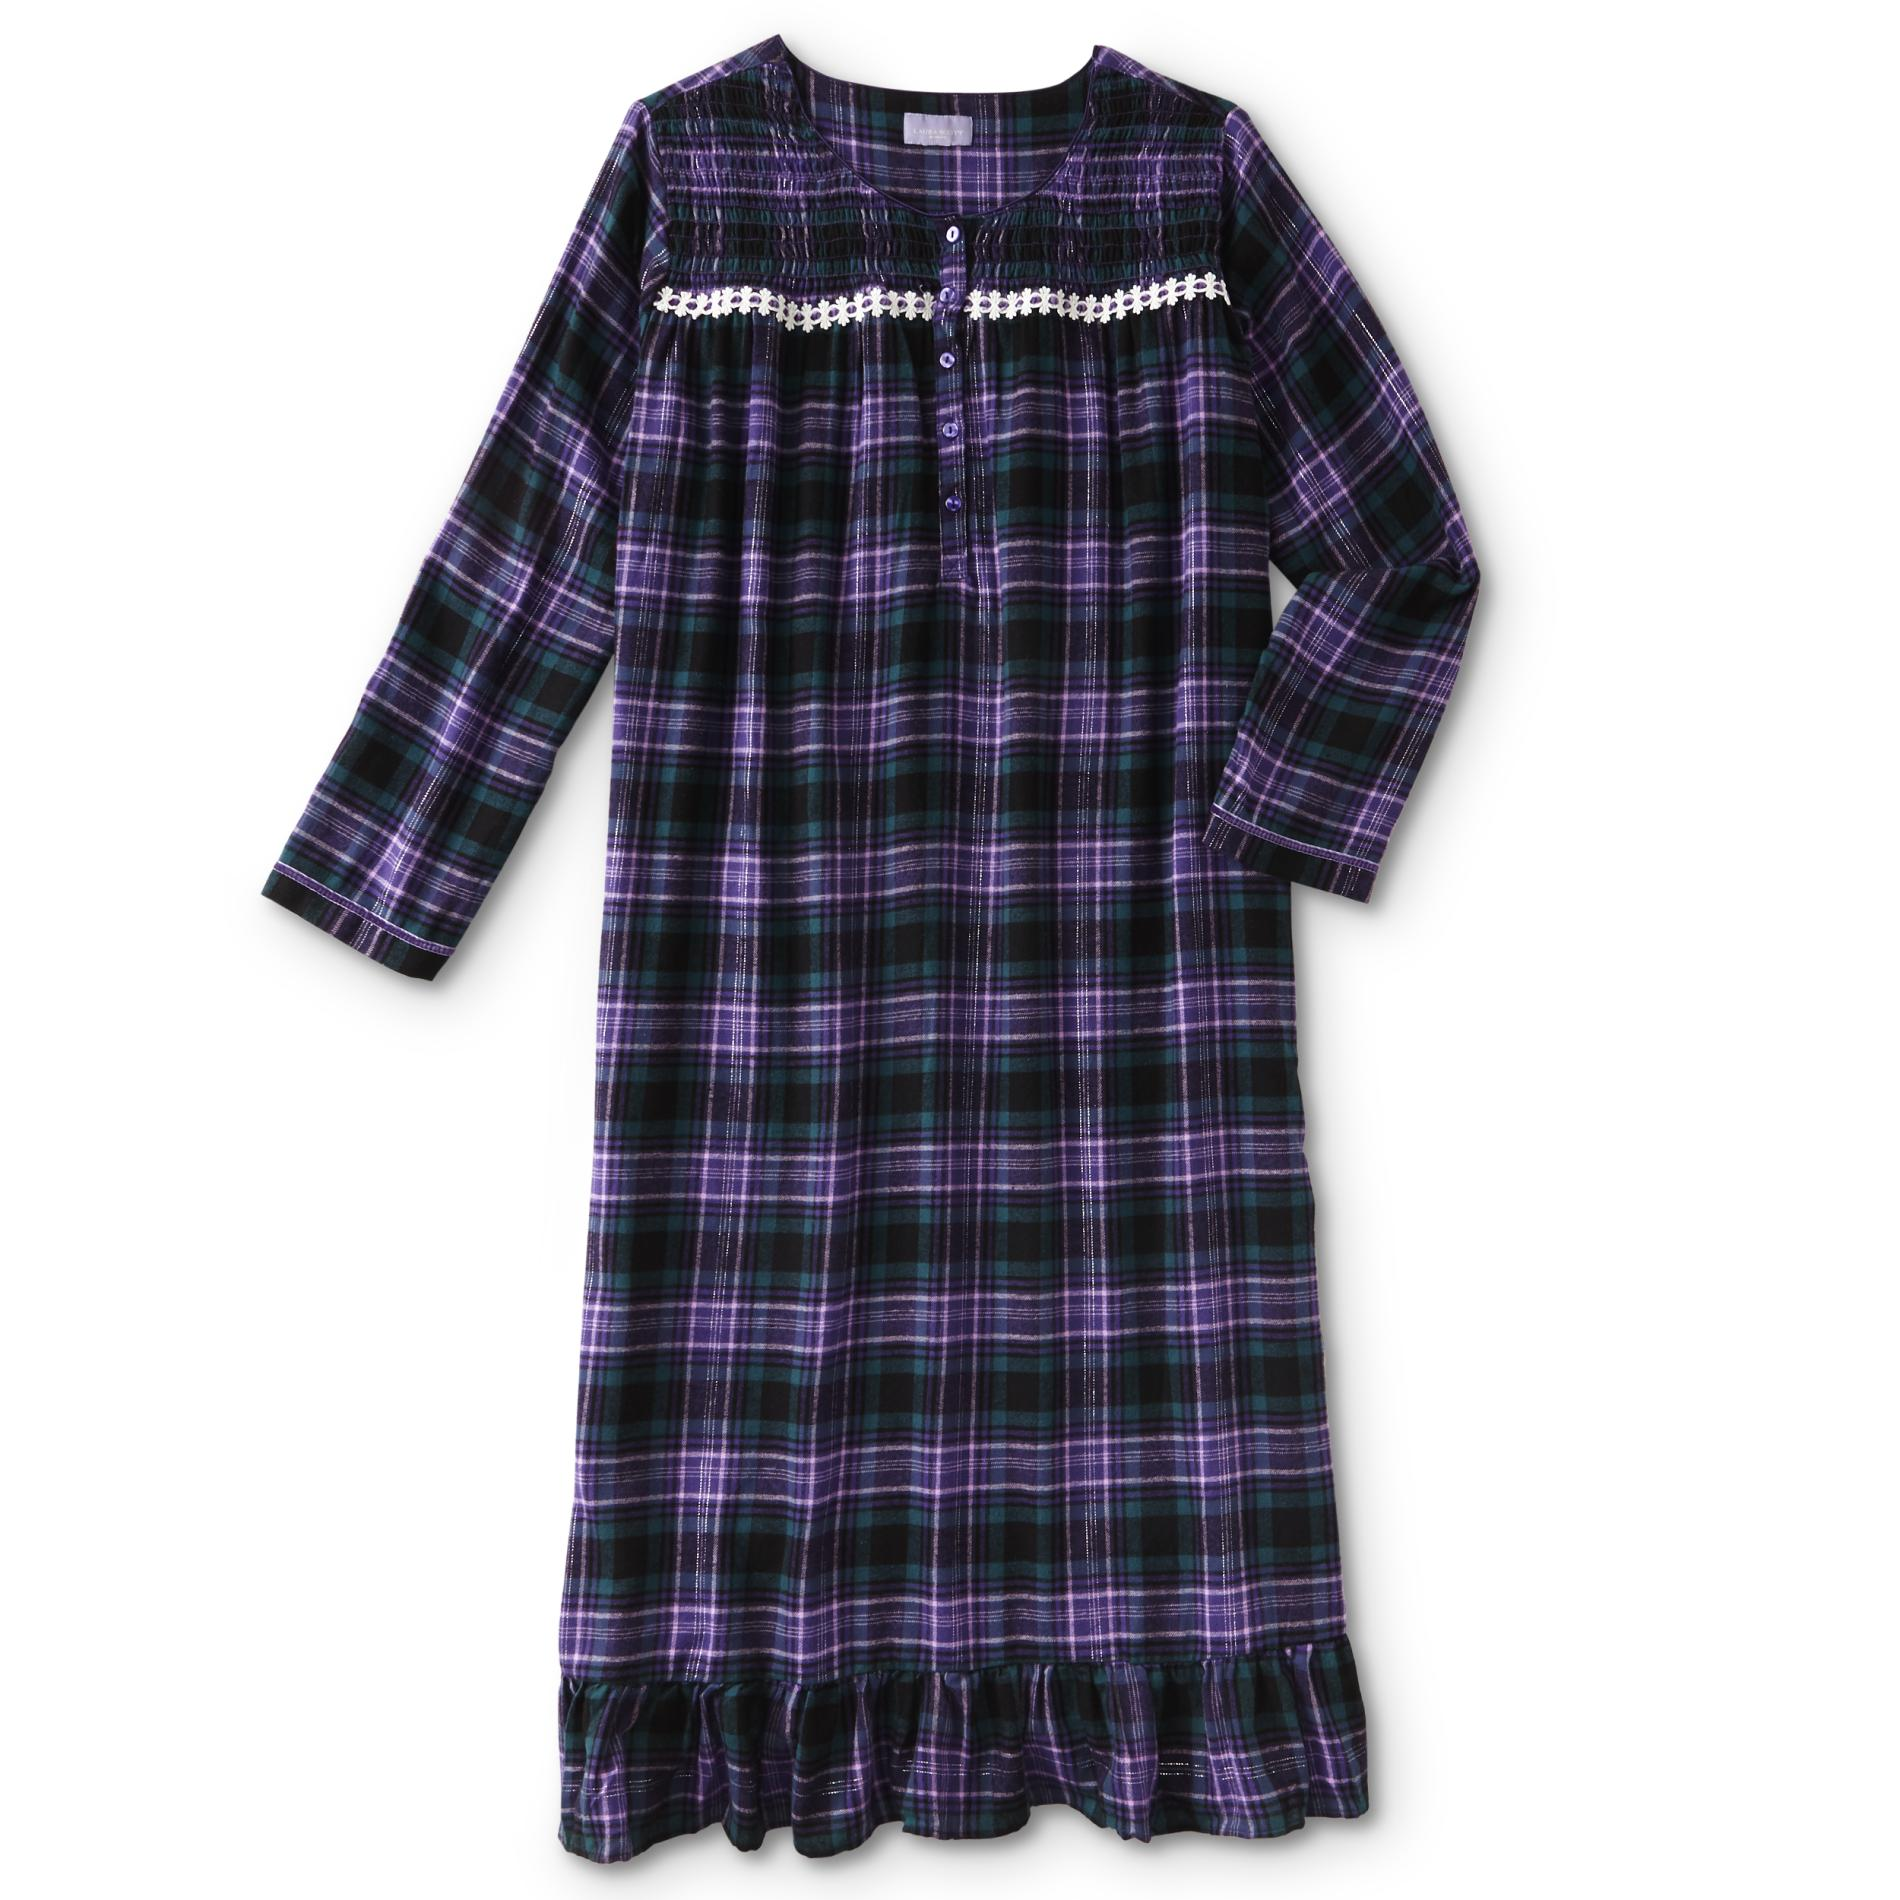 392369c02f 20+ Kmart Plus Size Flannel Gown Pictures and Ideas on Meta Networks